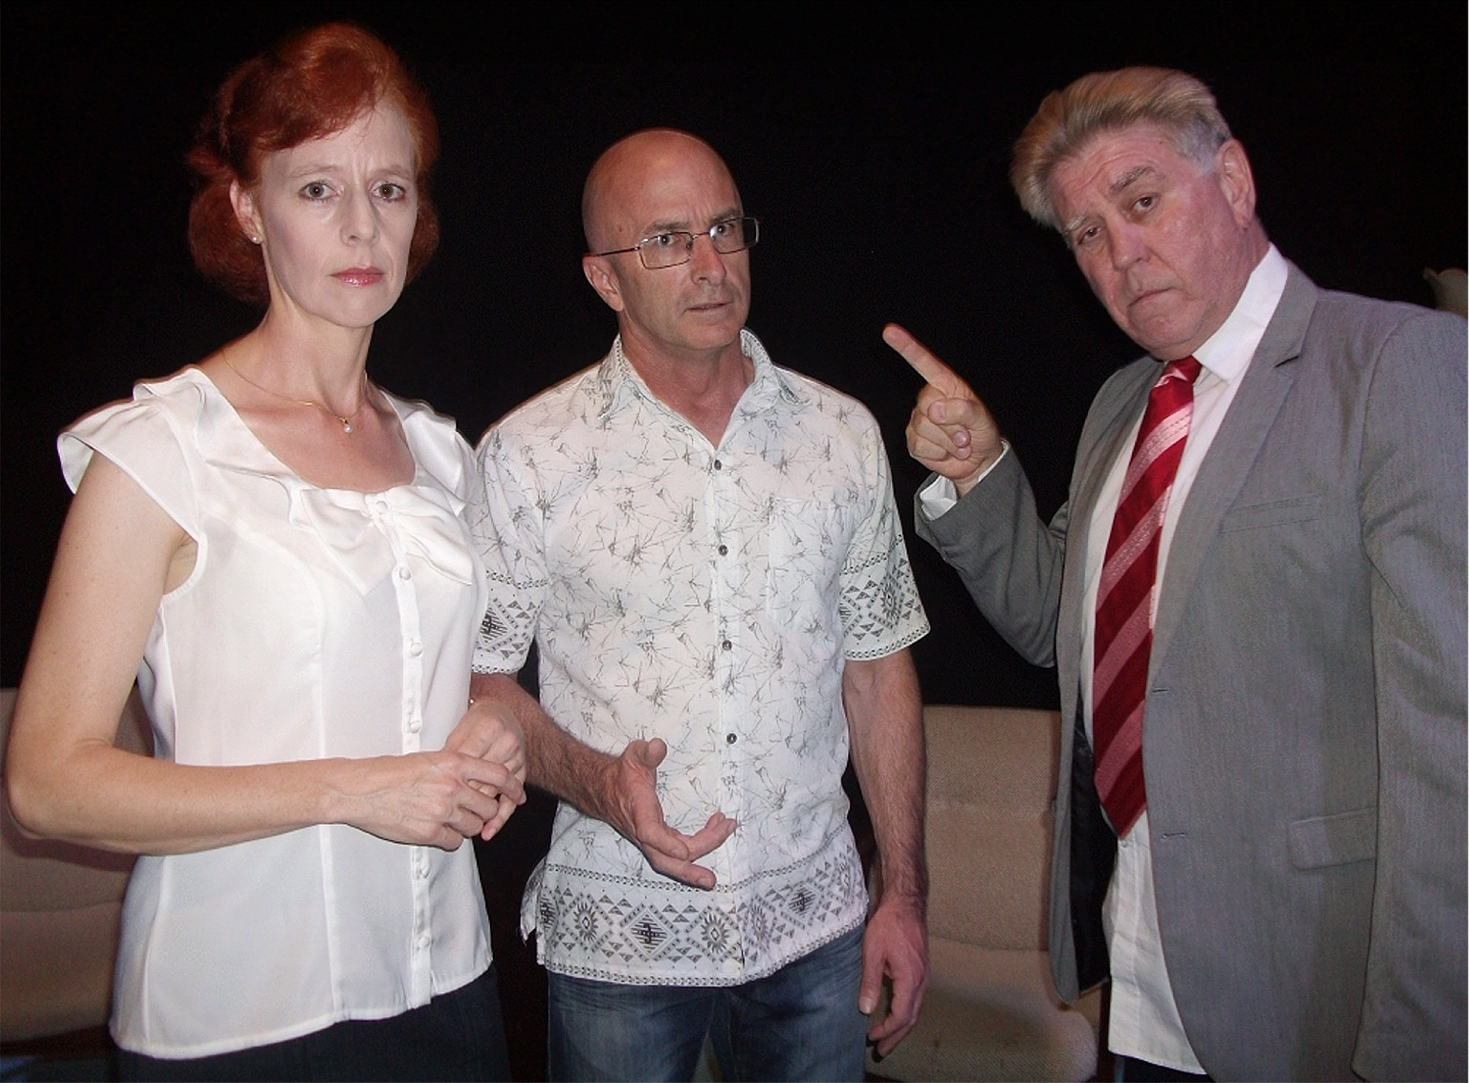 Gael Campbell-Young, left, Alan Bascombe and Ron Arthurs are appearing in the thriller  Deadly Relations  this February